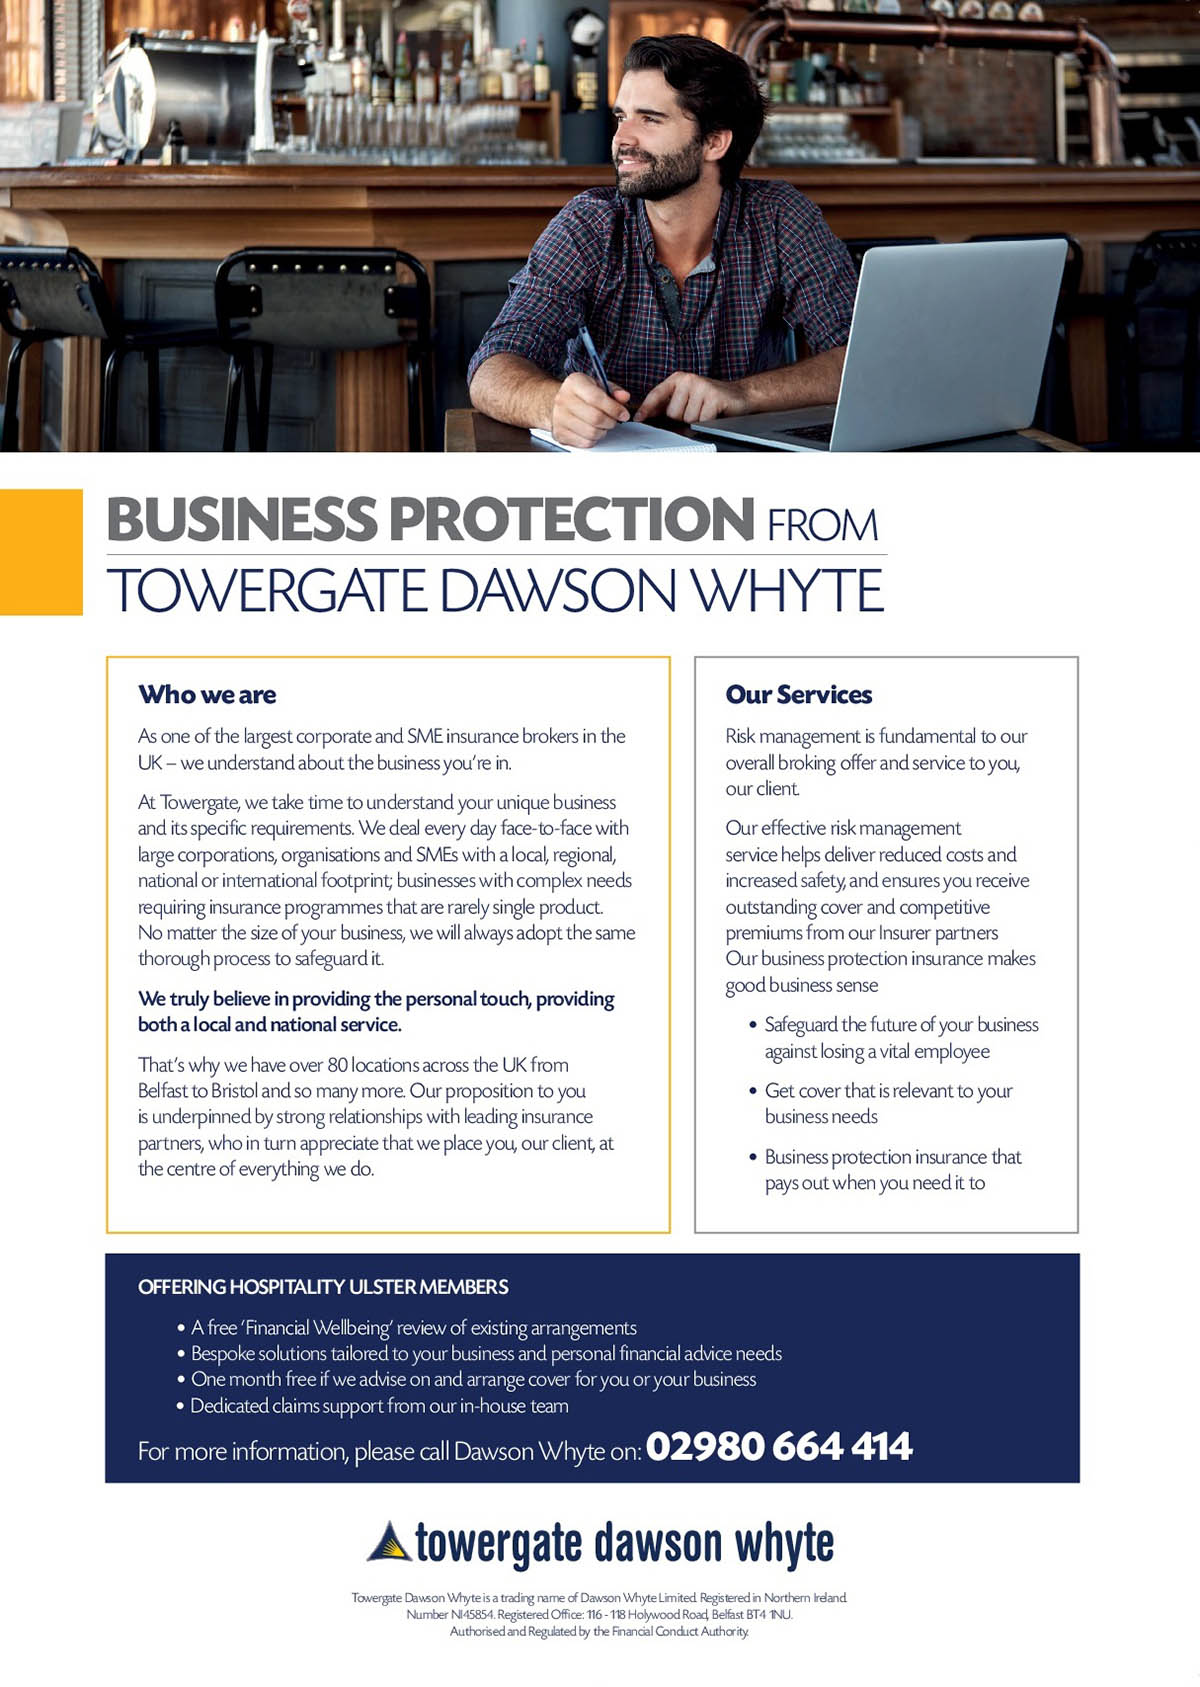 towergate-business-protection-3-of-4-image.jpg